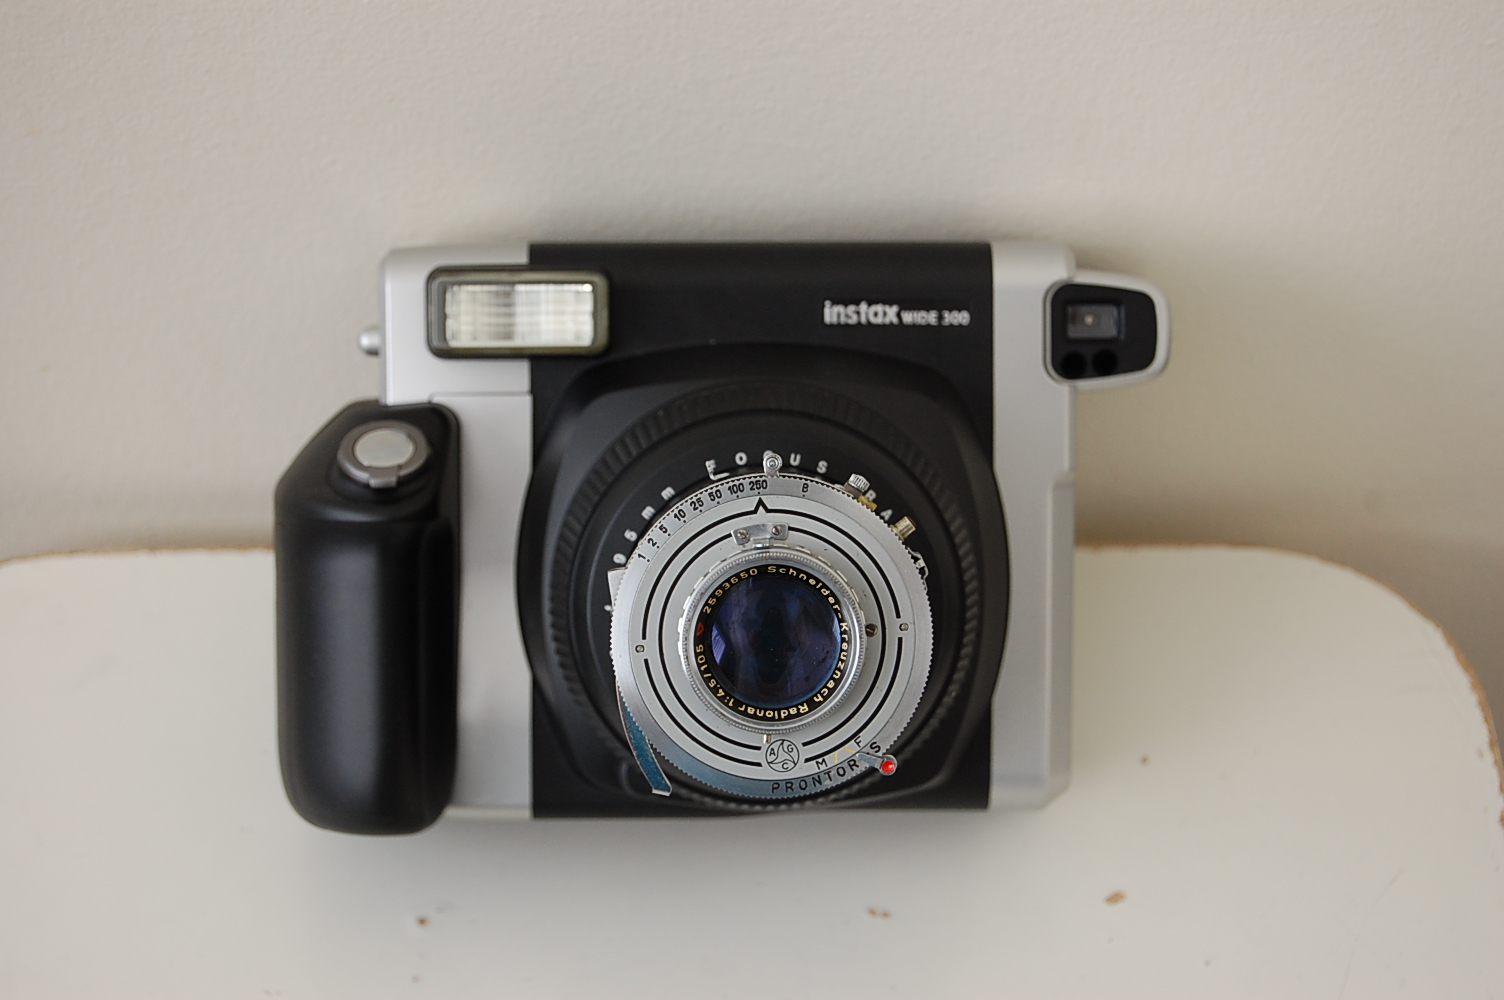 The Shutter Goes Click With Jj Lee Instaxhack Prototype 1 Of Fujifilm Instax Wide 300 Instant Film Camera I Couldnt Sleep And Banged Away At Starting 540 Am Which Is Not Good Because Im Supposed To Be Writing My Second Book Instead This Blog Oh Well